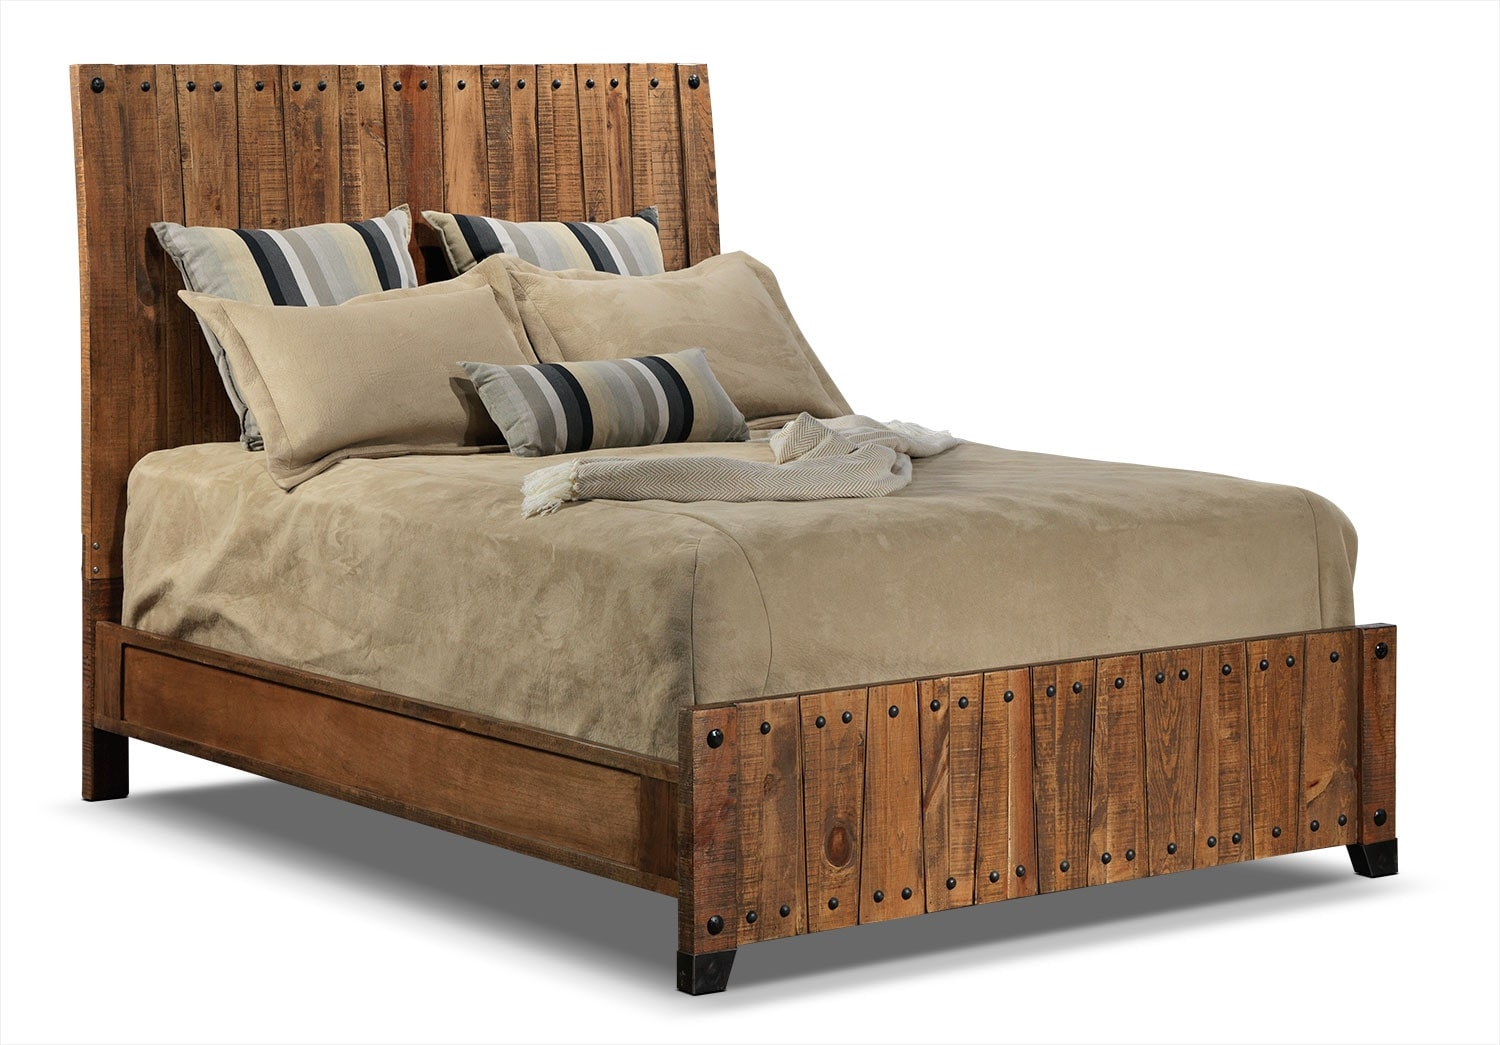 Maya Queen Bed - Rustic Pine